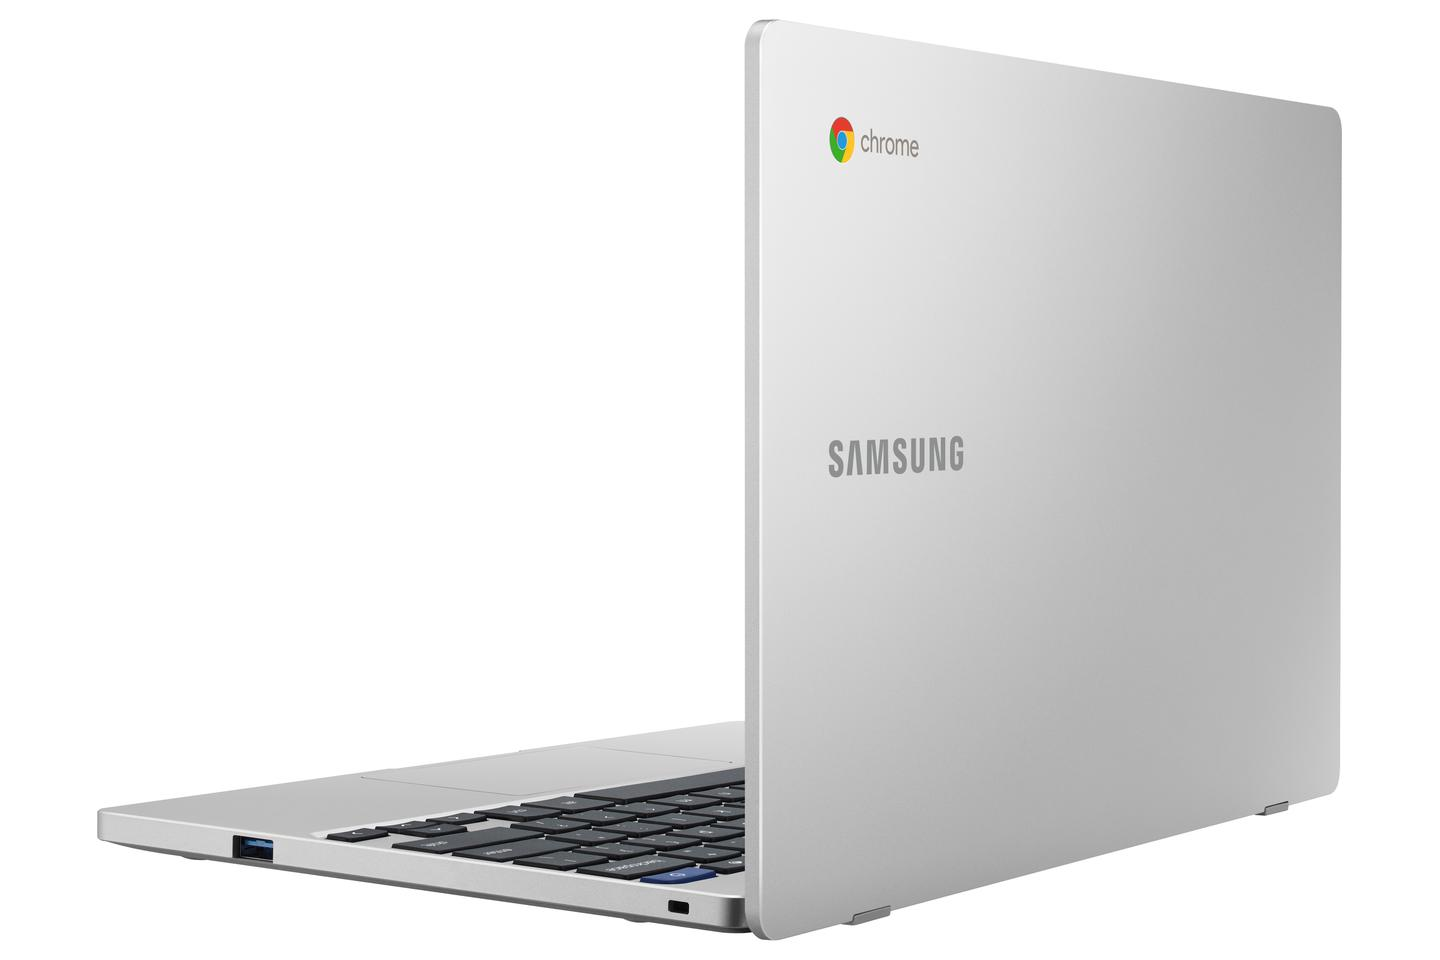 Samsung says that the Chromebook 4 and 4+ have been durability tested to military-grade standards